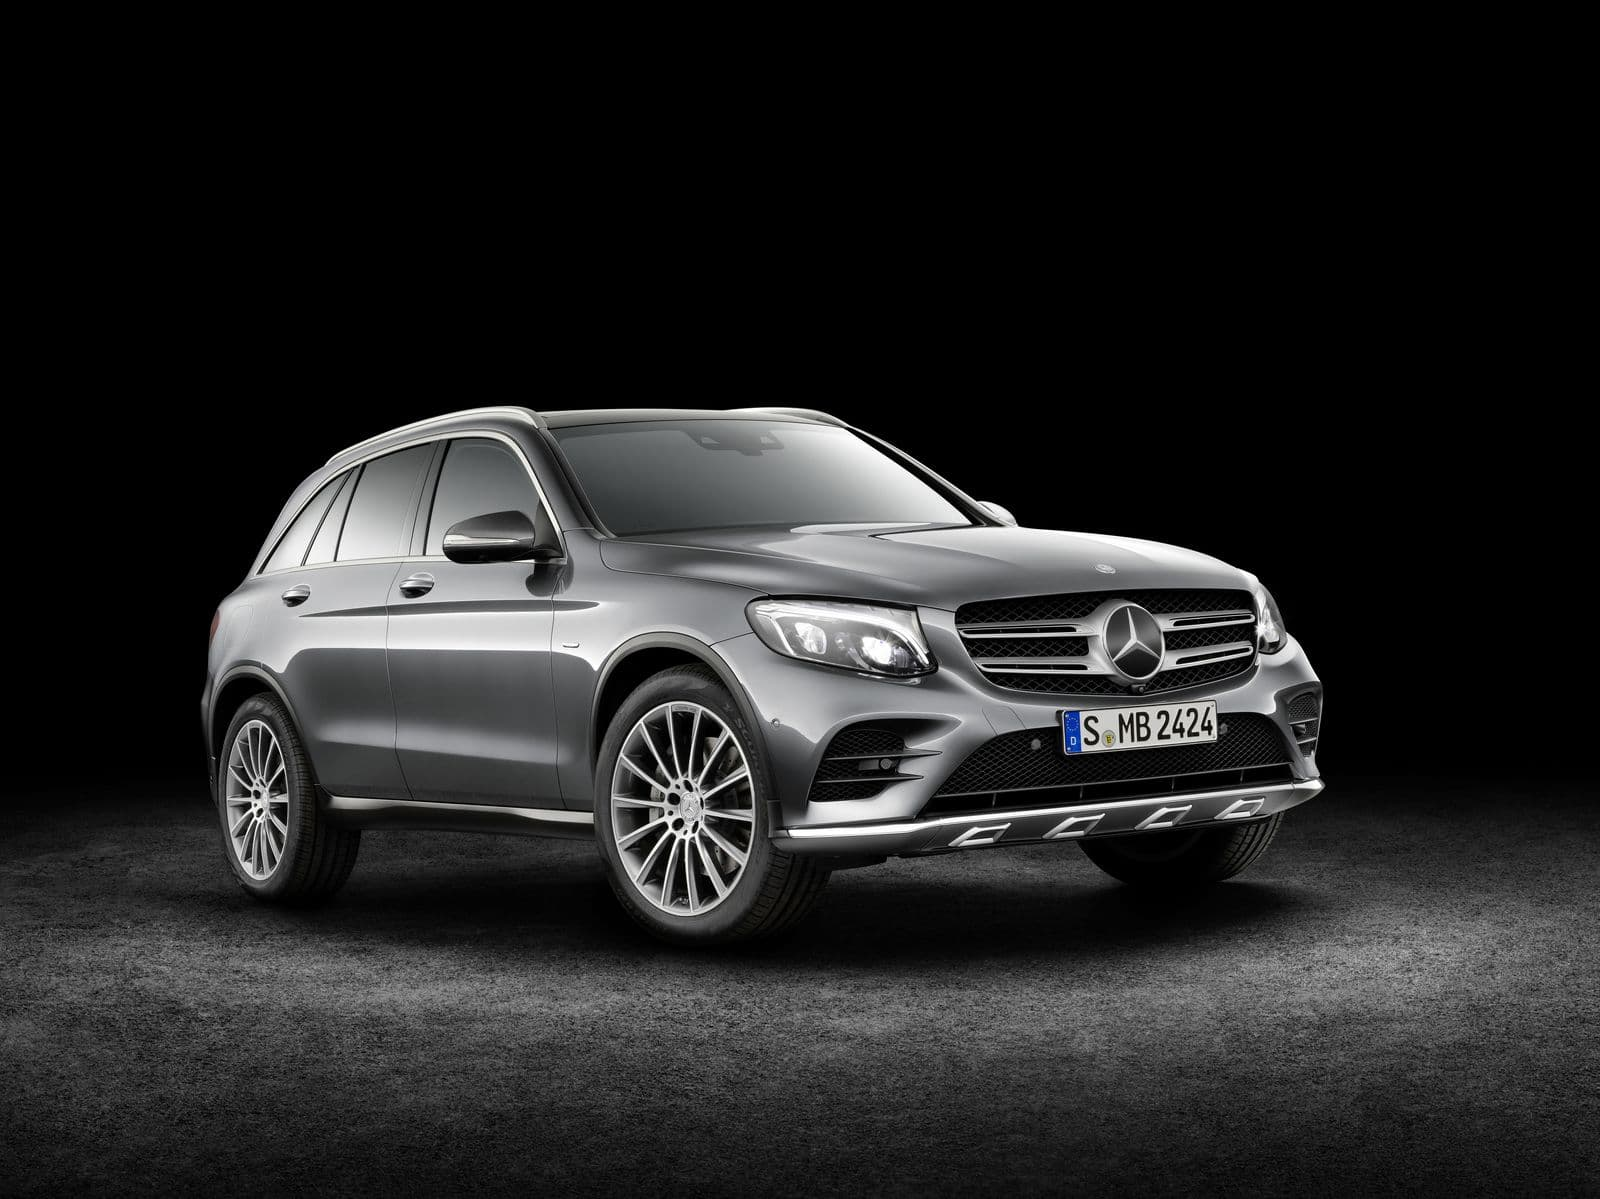 Mercedes GLC : on efface tout et on recommence